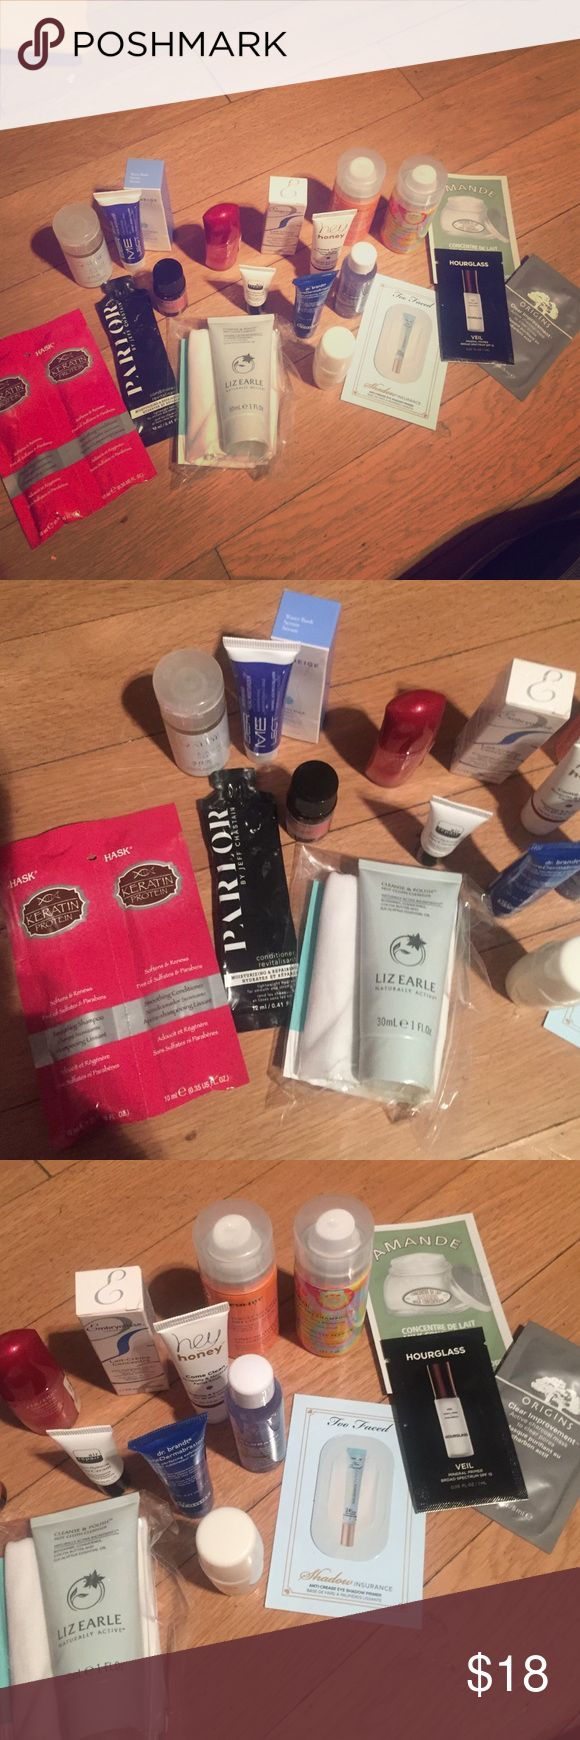 Great lot of beauty goodies - Sephora ipsy ❤️ Great lot ! includes Liz Earle cleanse & polish - hawk shampoo and conditioner packet - parlor conditioner packet - tatcha pure cleansing oil - Eva nyc hair serum - Eva nyc dry cond -Amika dry shmpo- key west aloe cleanser - dermelect moisturizer- Laniege water bank serum - klorane eye makeup remover - hey honey facial scrub - dr Brandt pore dermabrasion- air repair eye cream - embryolisse creme - shiseido concentrate- too faced shadow ins…